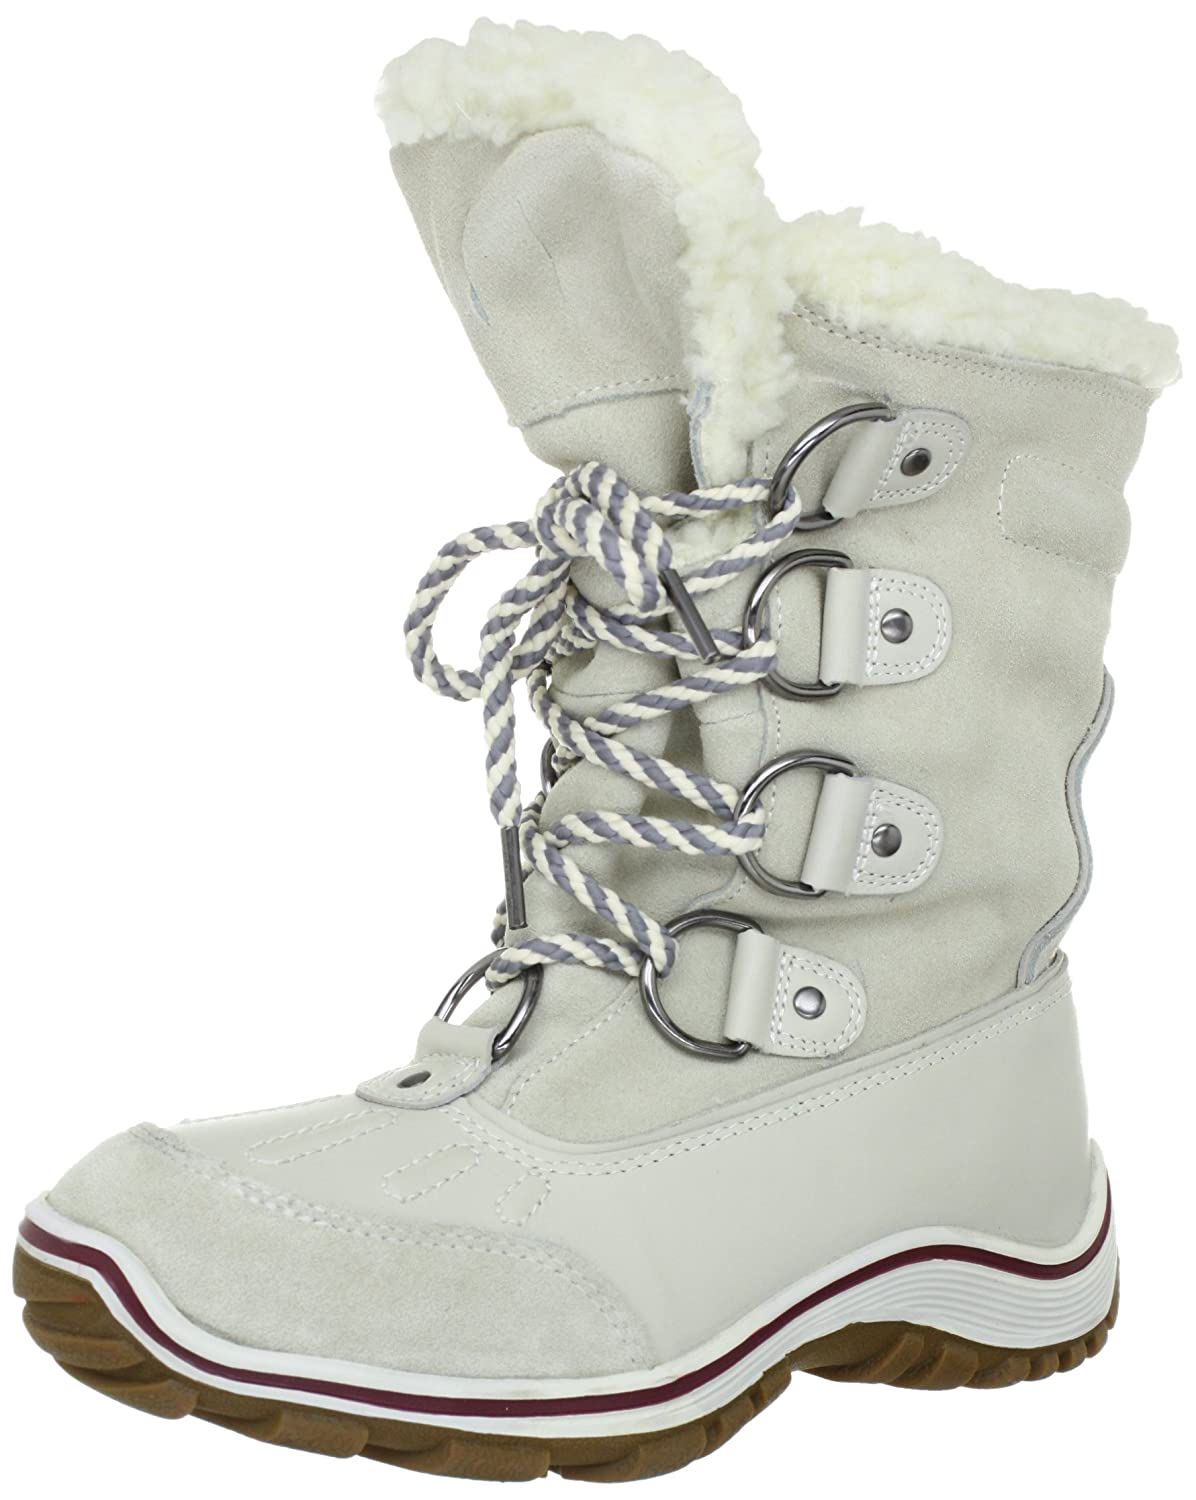 Pajar Women's Alina Boot B007SRUG16 36 EU/5-5.5 M US|Ice/White